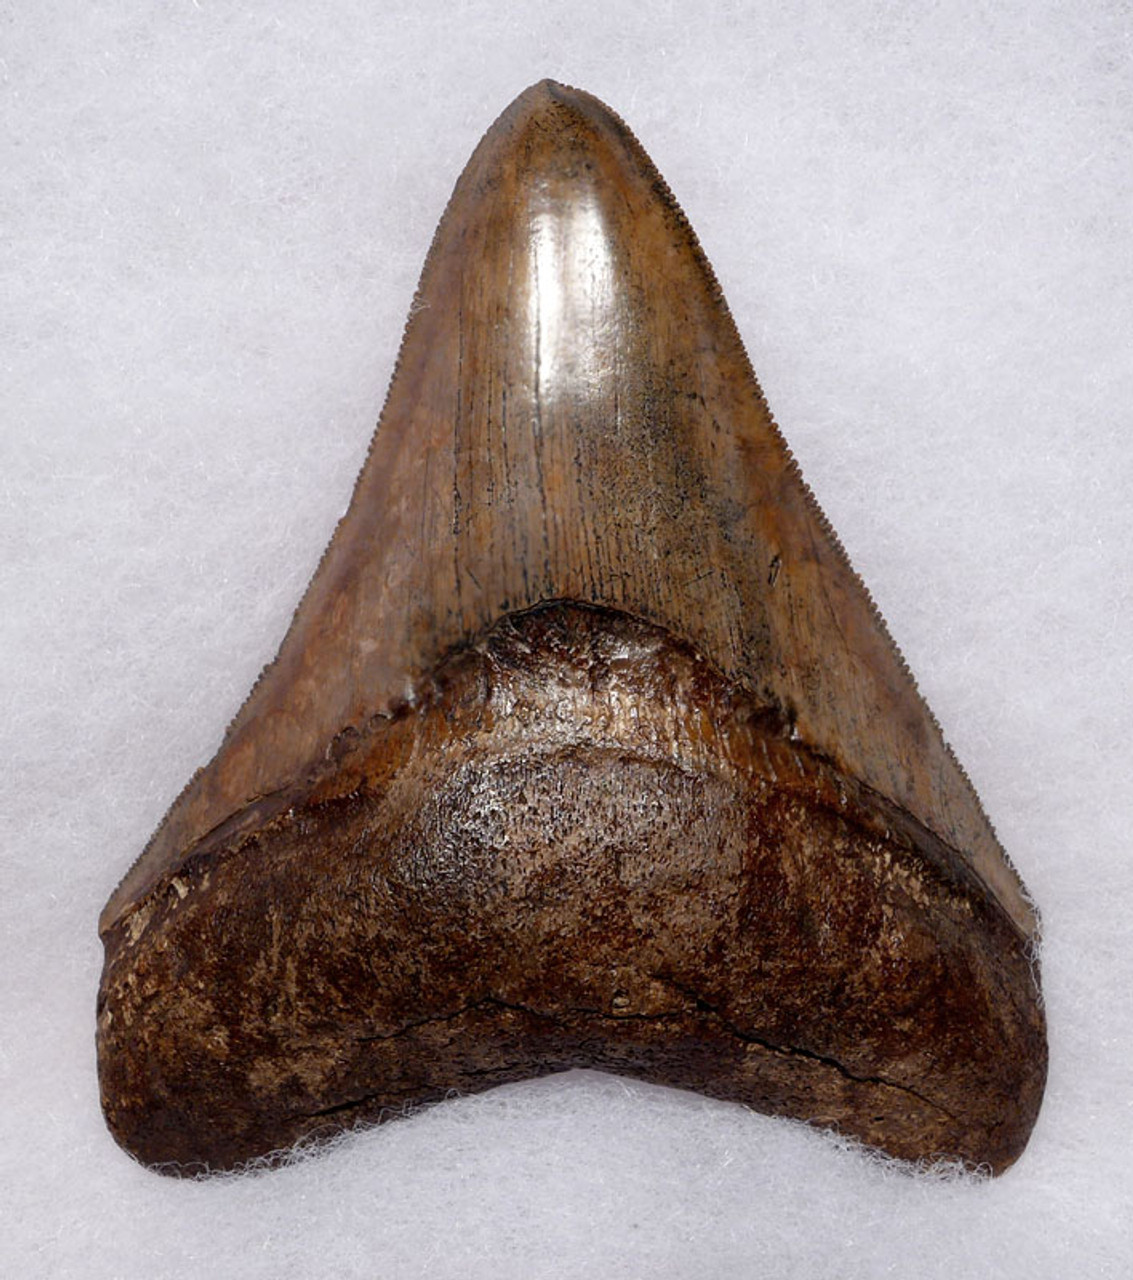 SH6-396 - PREMIUM COLLECTOR GRADE SPOTTED COPPER BROWN 4 INCH MEGALODON FOSSIL SHARK TOOTH WITH PATHOLOGY